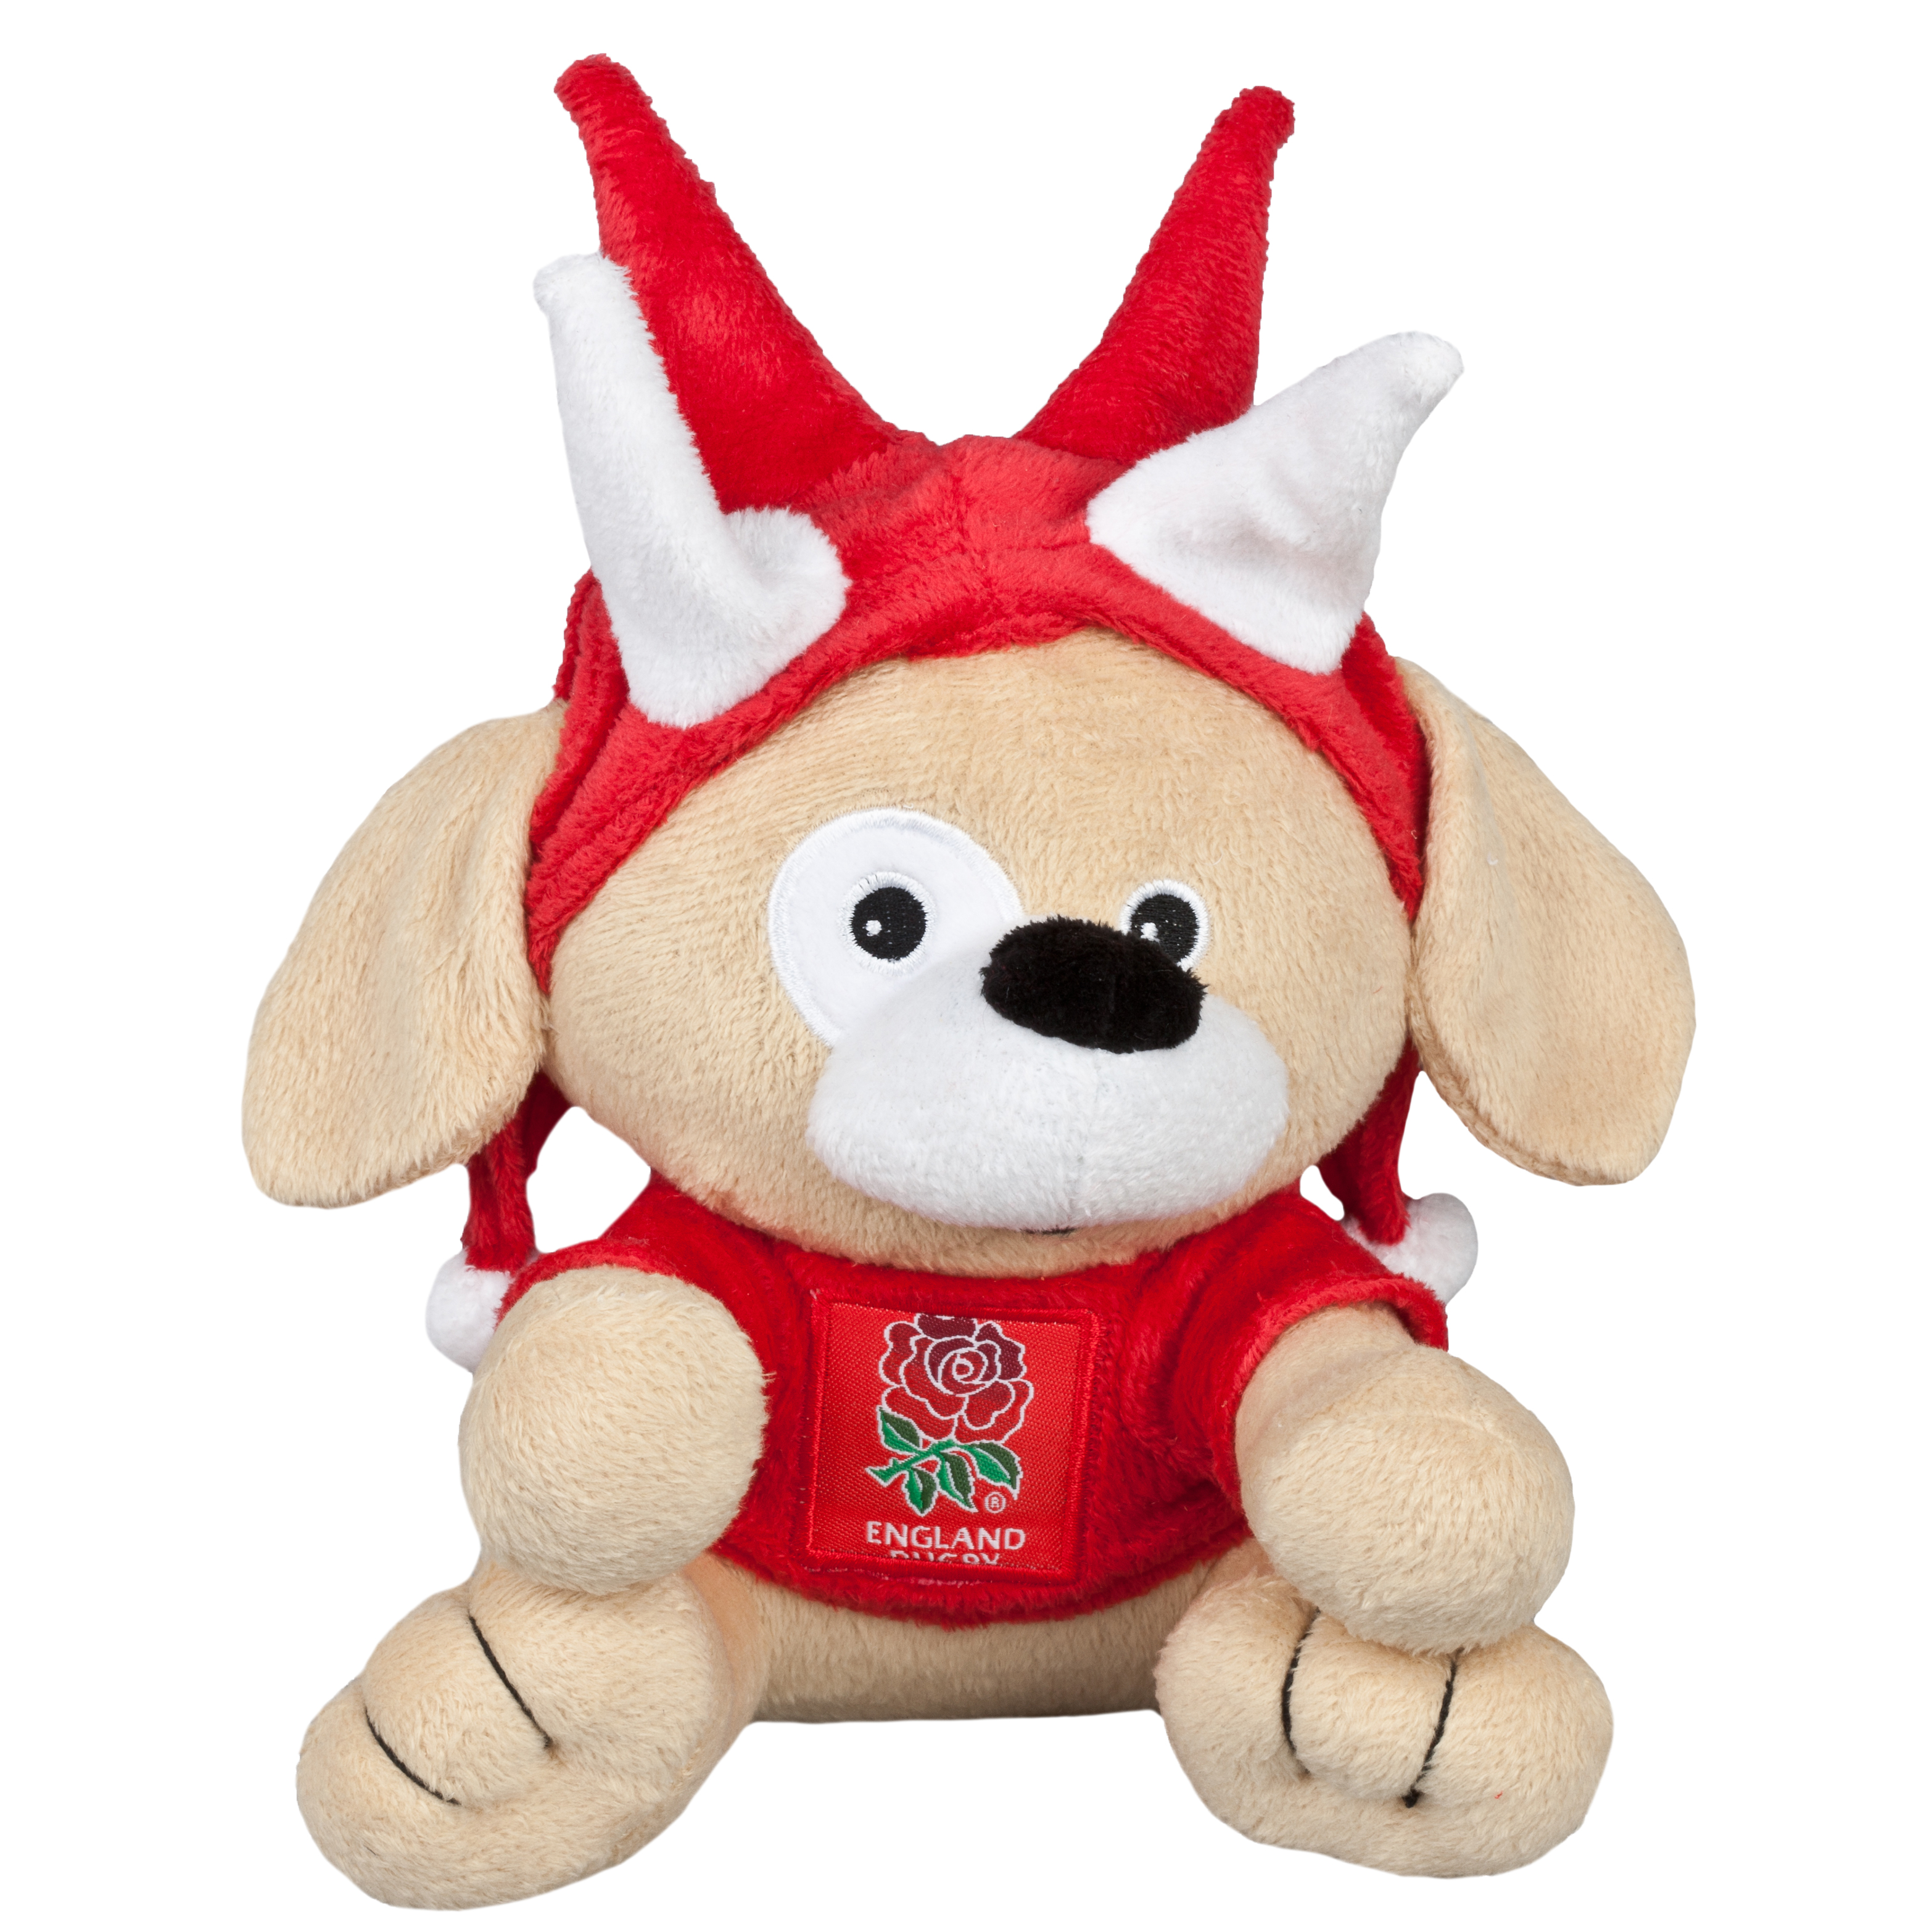 England Rugby Dog with Spiked Hat